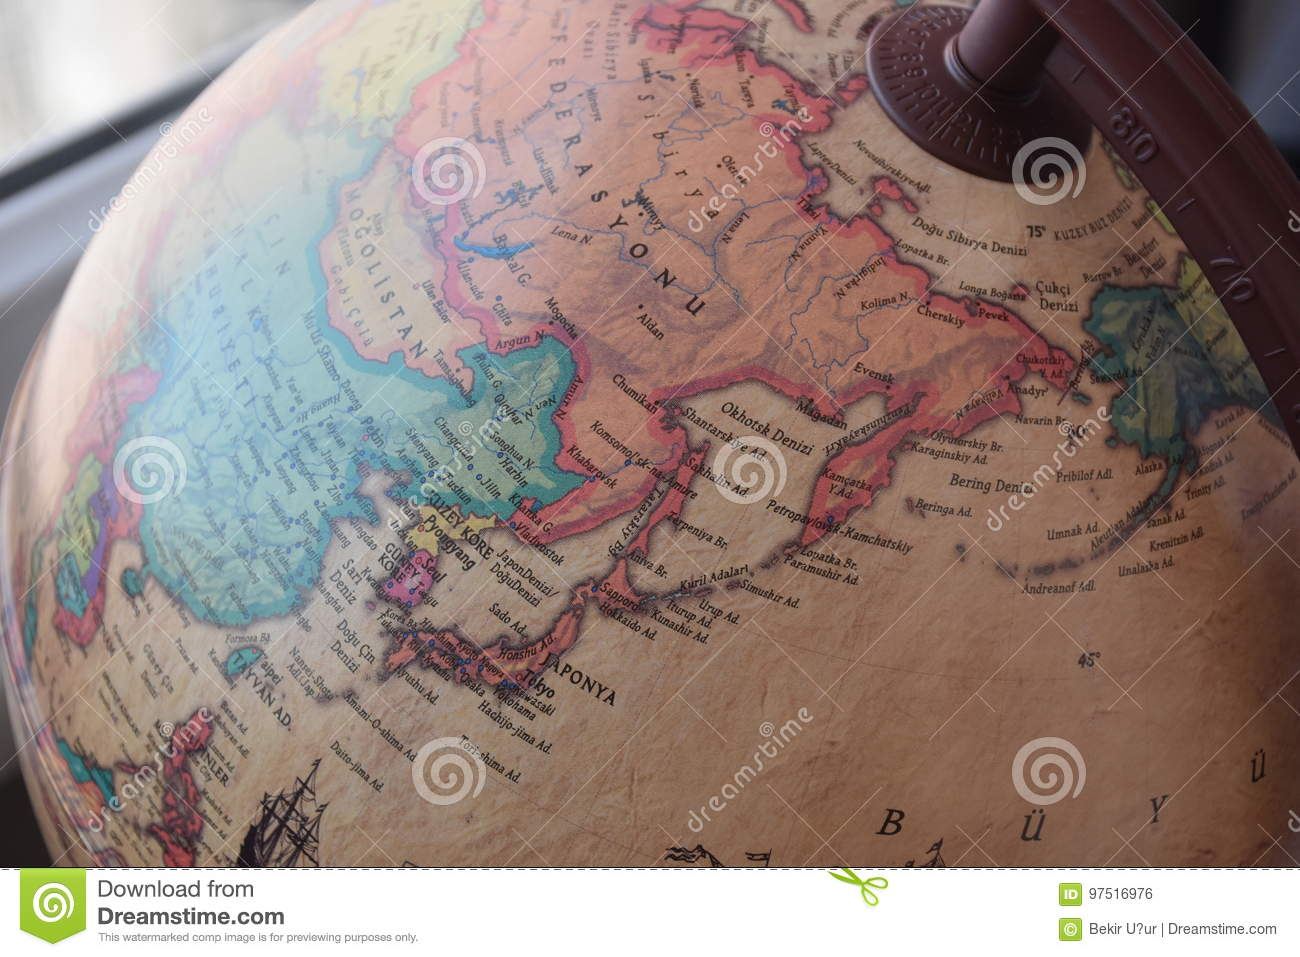 Japan world map stock photo. Image of asia, kingdom, diamond - 97516976